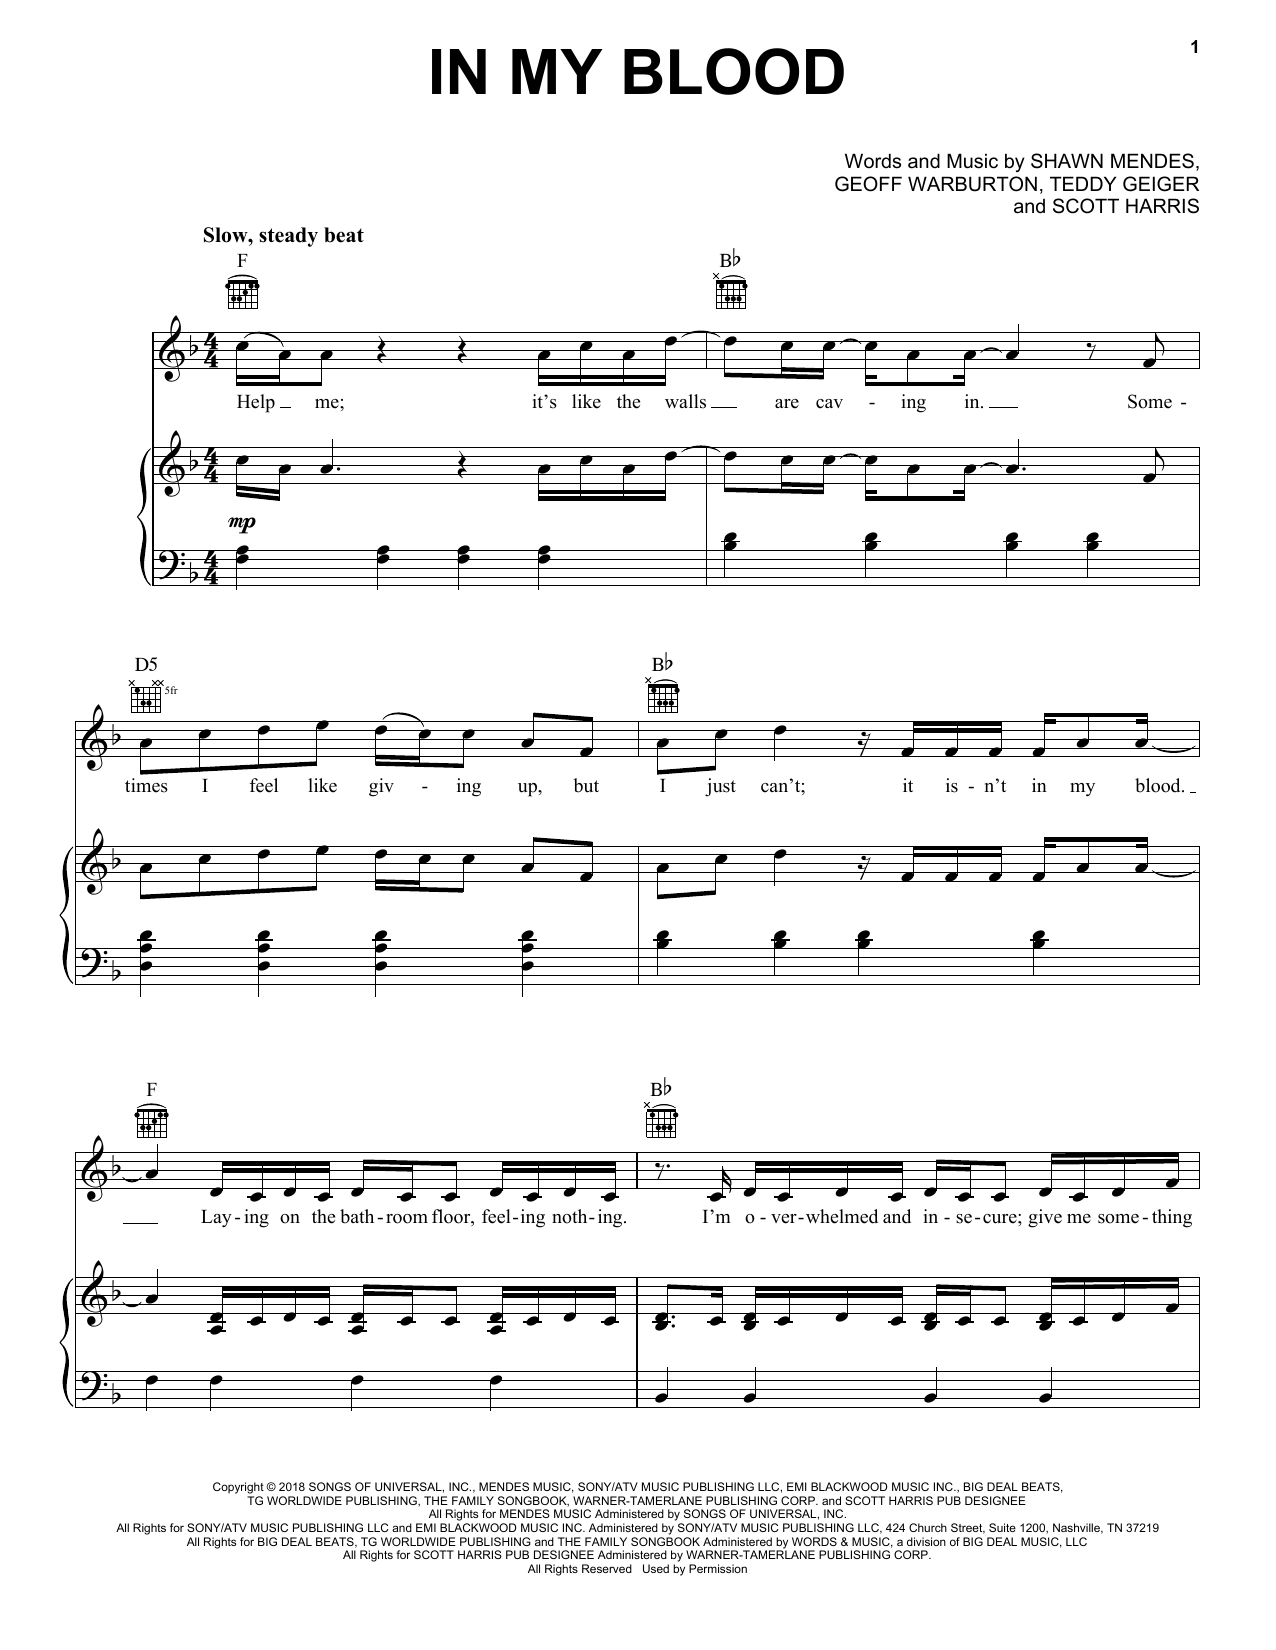 Shawn Mendes 'In My Blood' Sheet Music Notes, Chords | Download Printable  Piano, Vocal & Guitar (Right-Hand Melody) - SKU: 251572